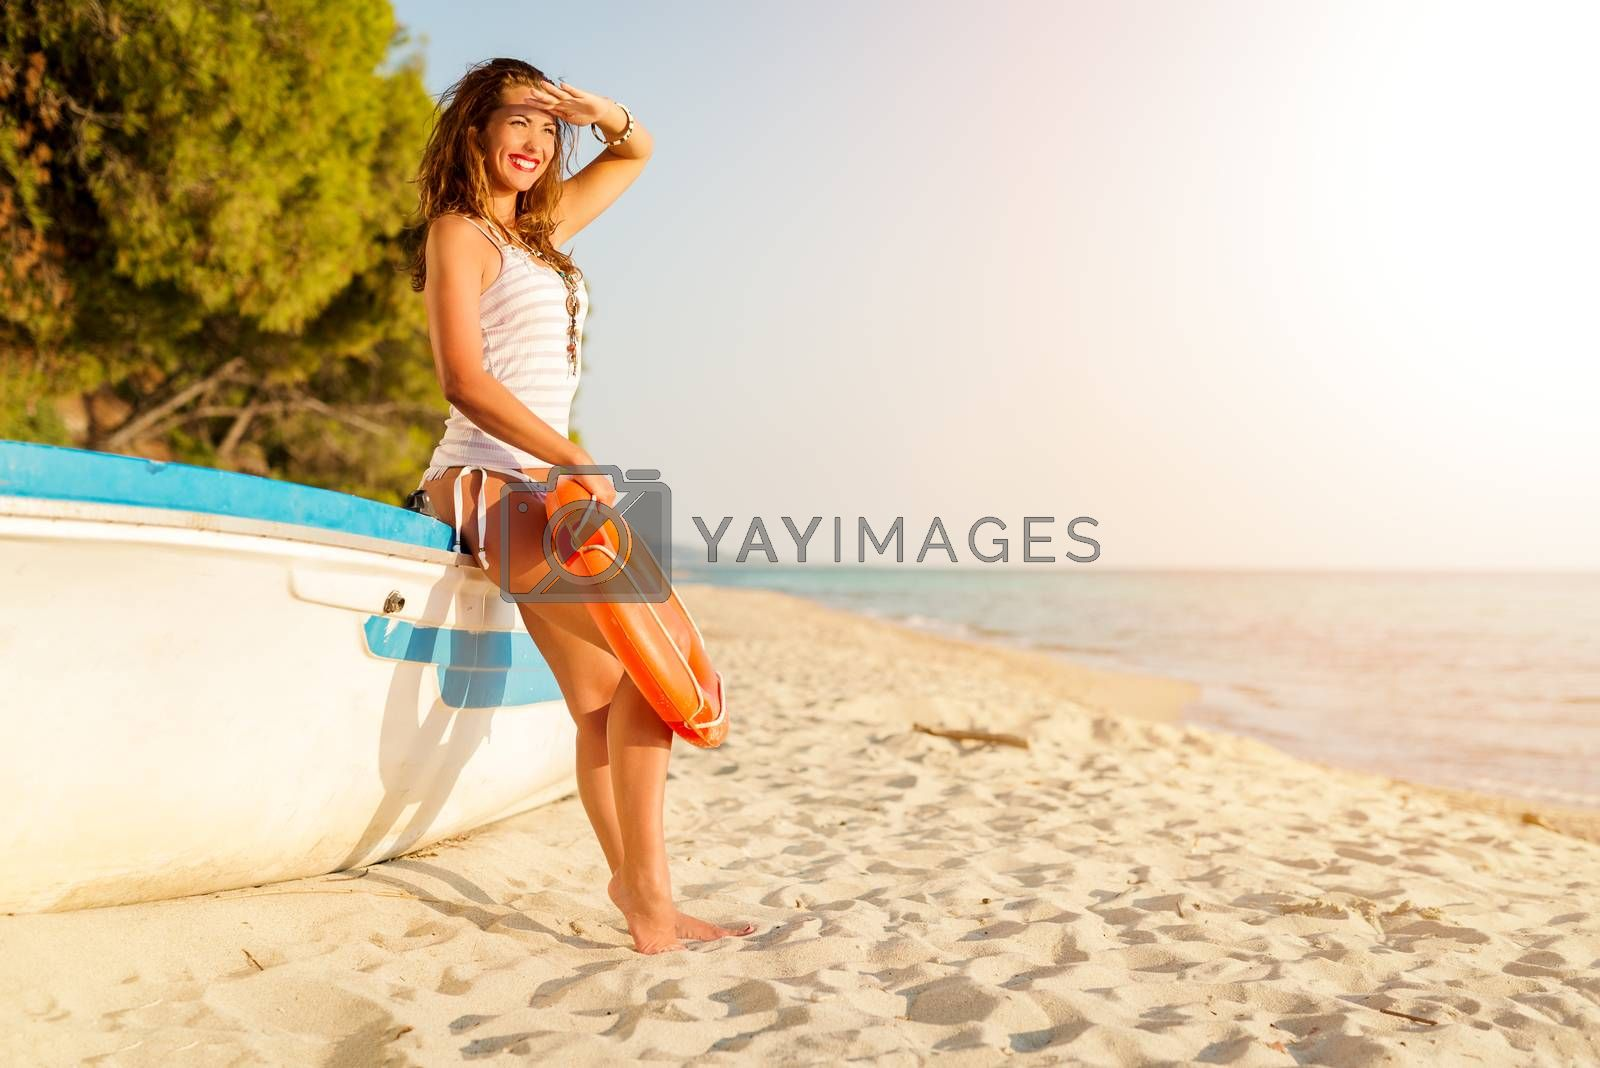 Beautiful young woman relaxing on the beach. She is standing next to boat and looking away.